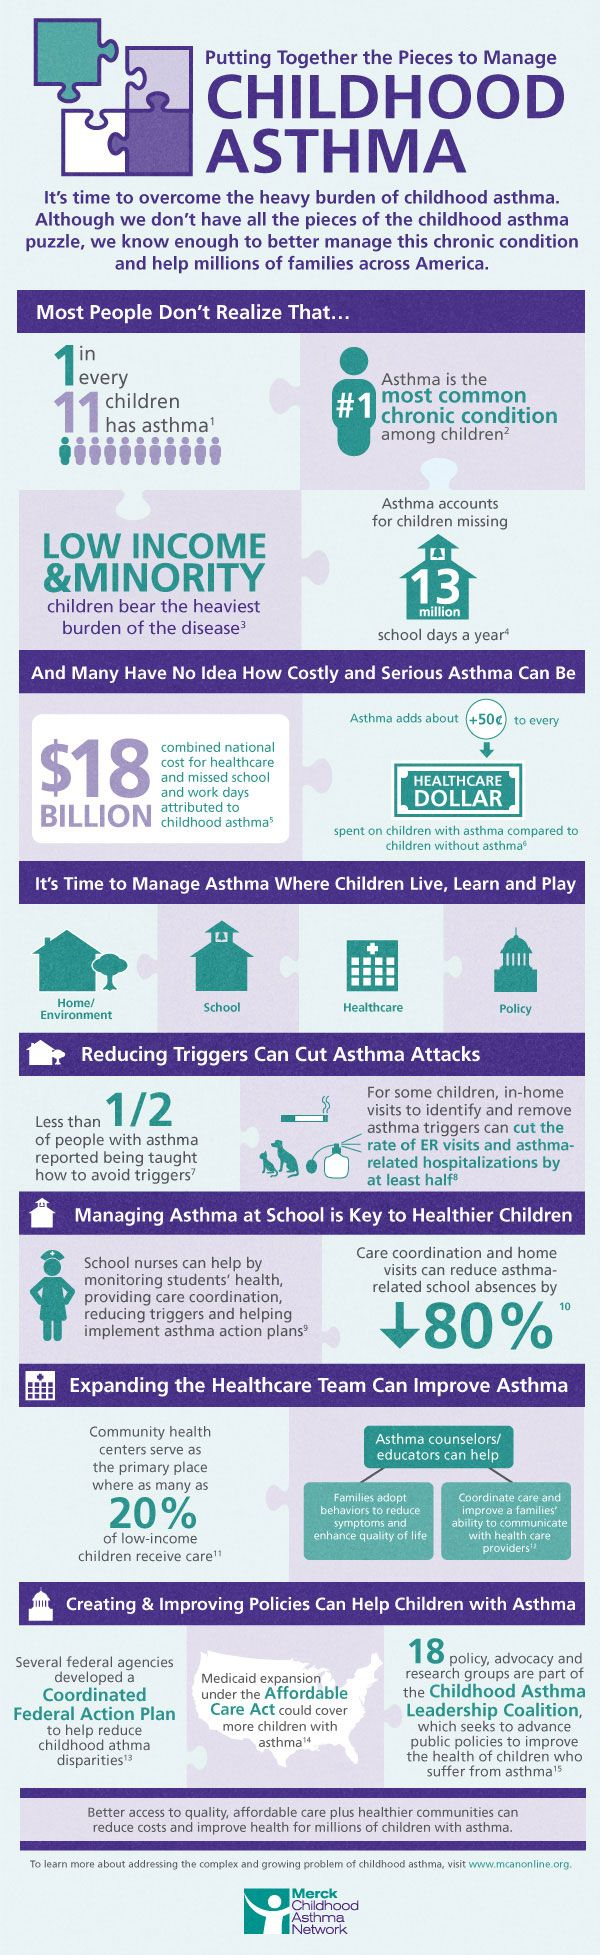 how to control asthma in children Any allergist prescribing corticosteroids to treat a child with asthma will recommend the lowest effective dose of these drugs and will monitor the child's growth your allergist will work with you to find the right medicine, or combination of medicines, to manage your asthma, and will adjust the dosage based on your symptoms and control.